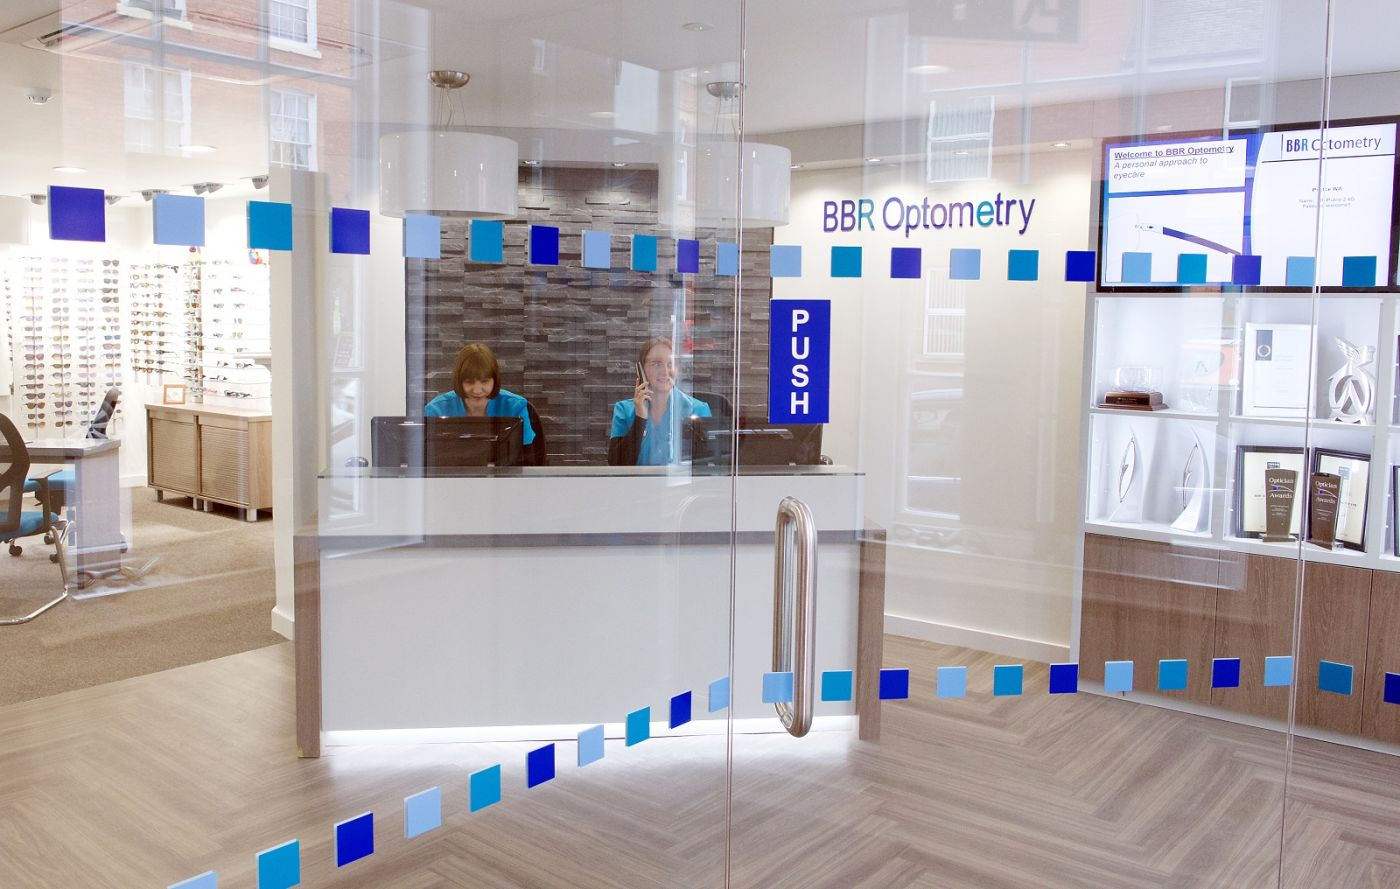 BBR Optometry entrance